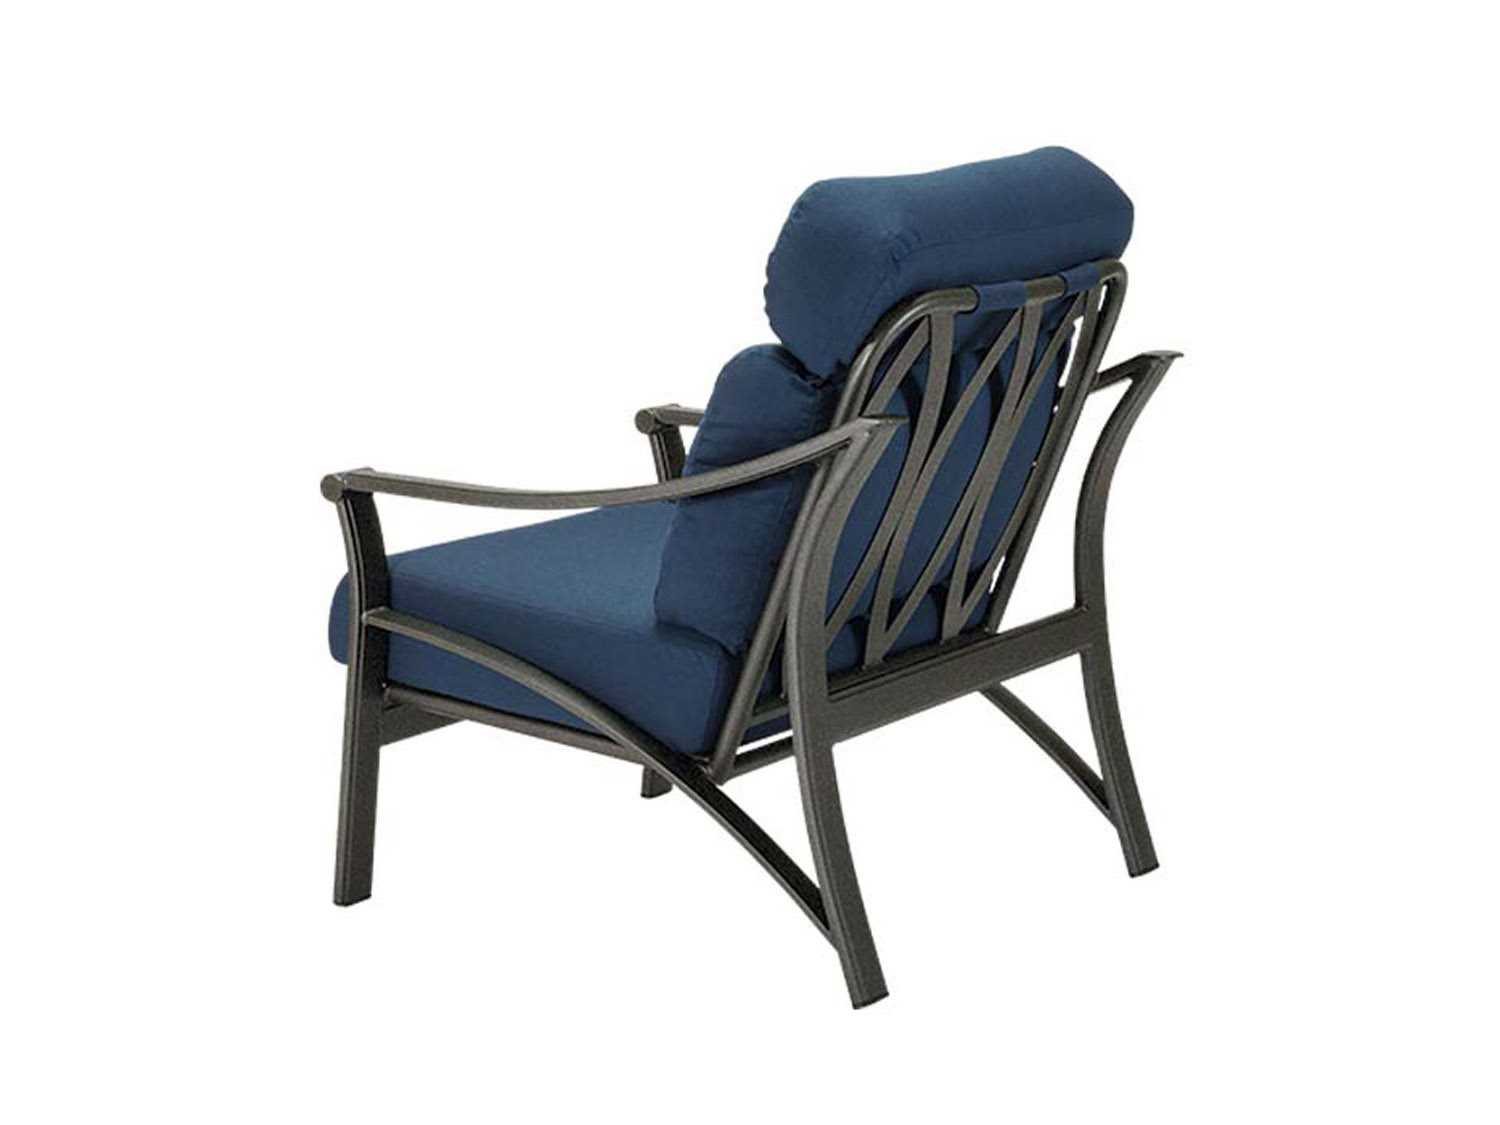 tropitone lounge chairs chair for infants to sit up corsica cushion 171311